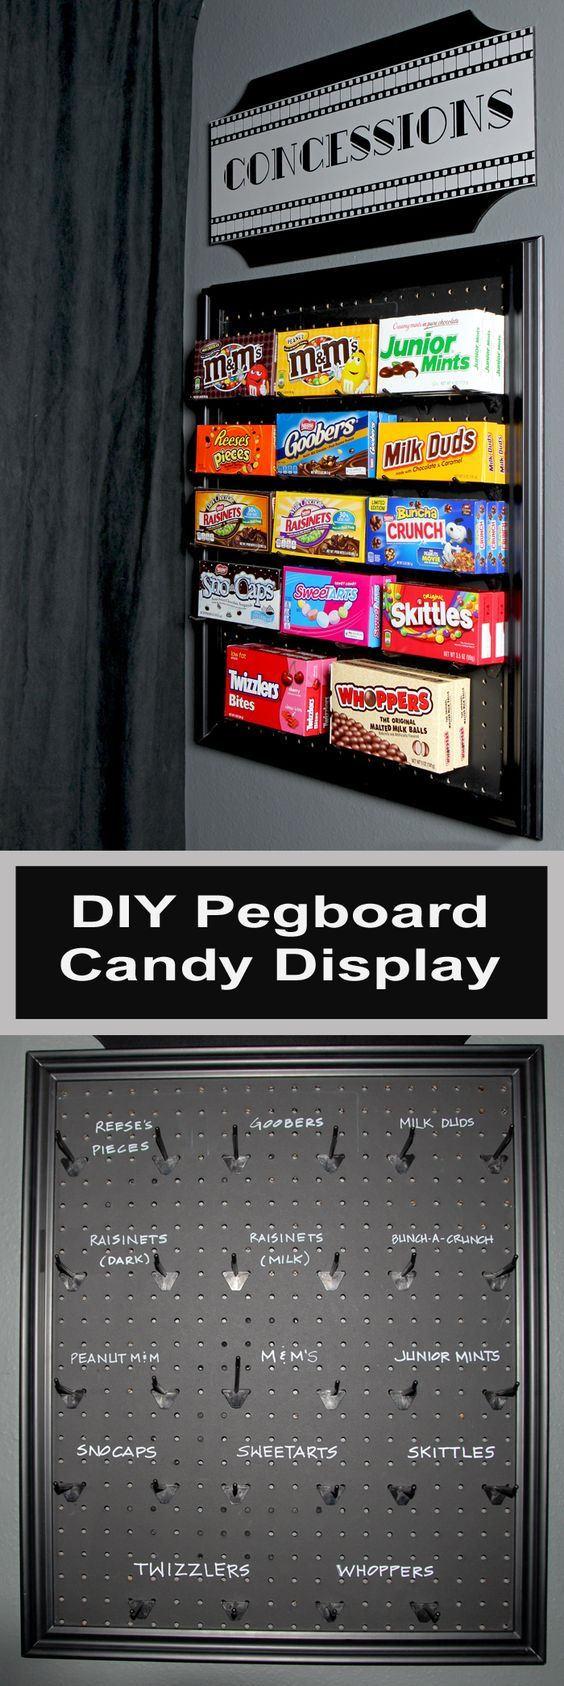 Workout diy pegboard hooks Hacks  pegboard Tools storage Painted diy pegboard Craft Room Display Backsplash diy pegboard tool holder Office diy pegboard ideas craft storage Wall pegboard Plants organization Accessories pegboard tool organization Kids pegboard ideas Installation garage How To Hang pegboard diy kitchen Shelves Cool pegboard diy Workshop Interior decor